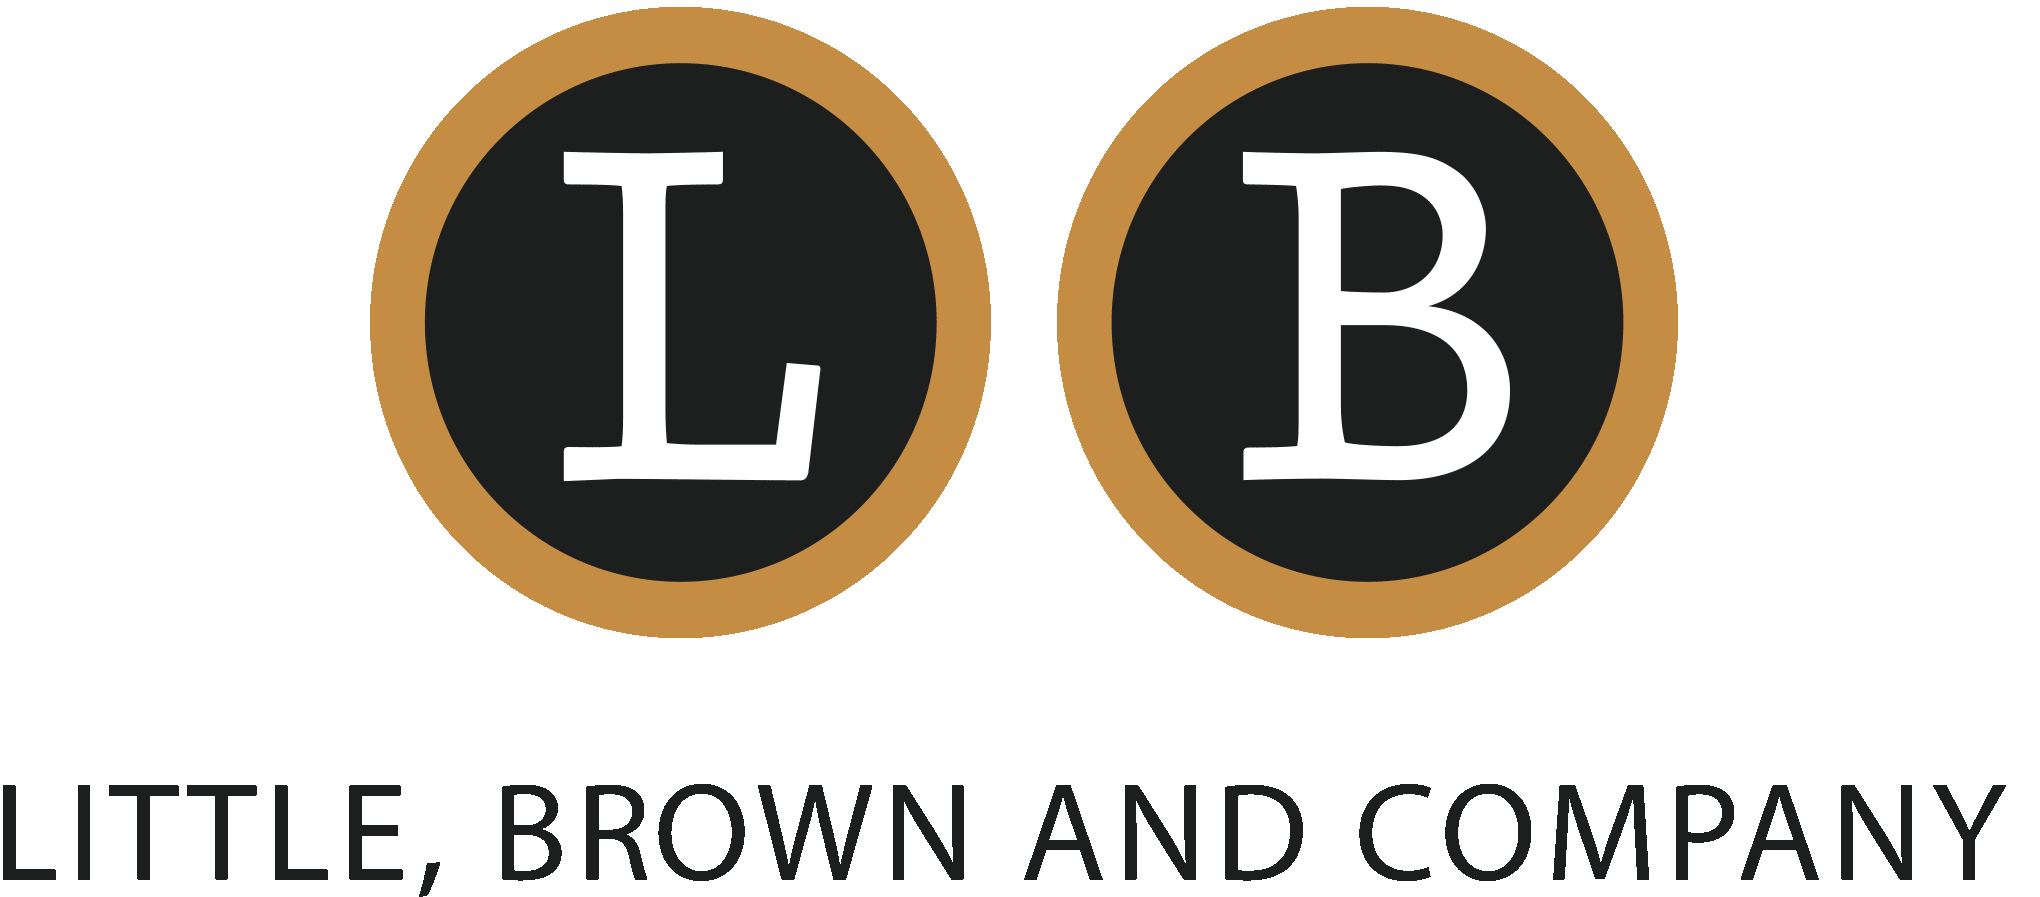 Little Brown & Company